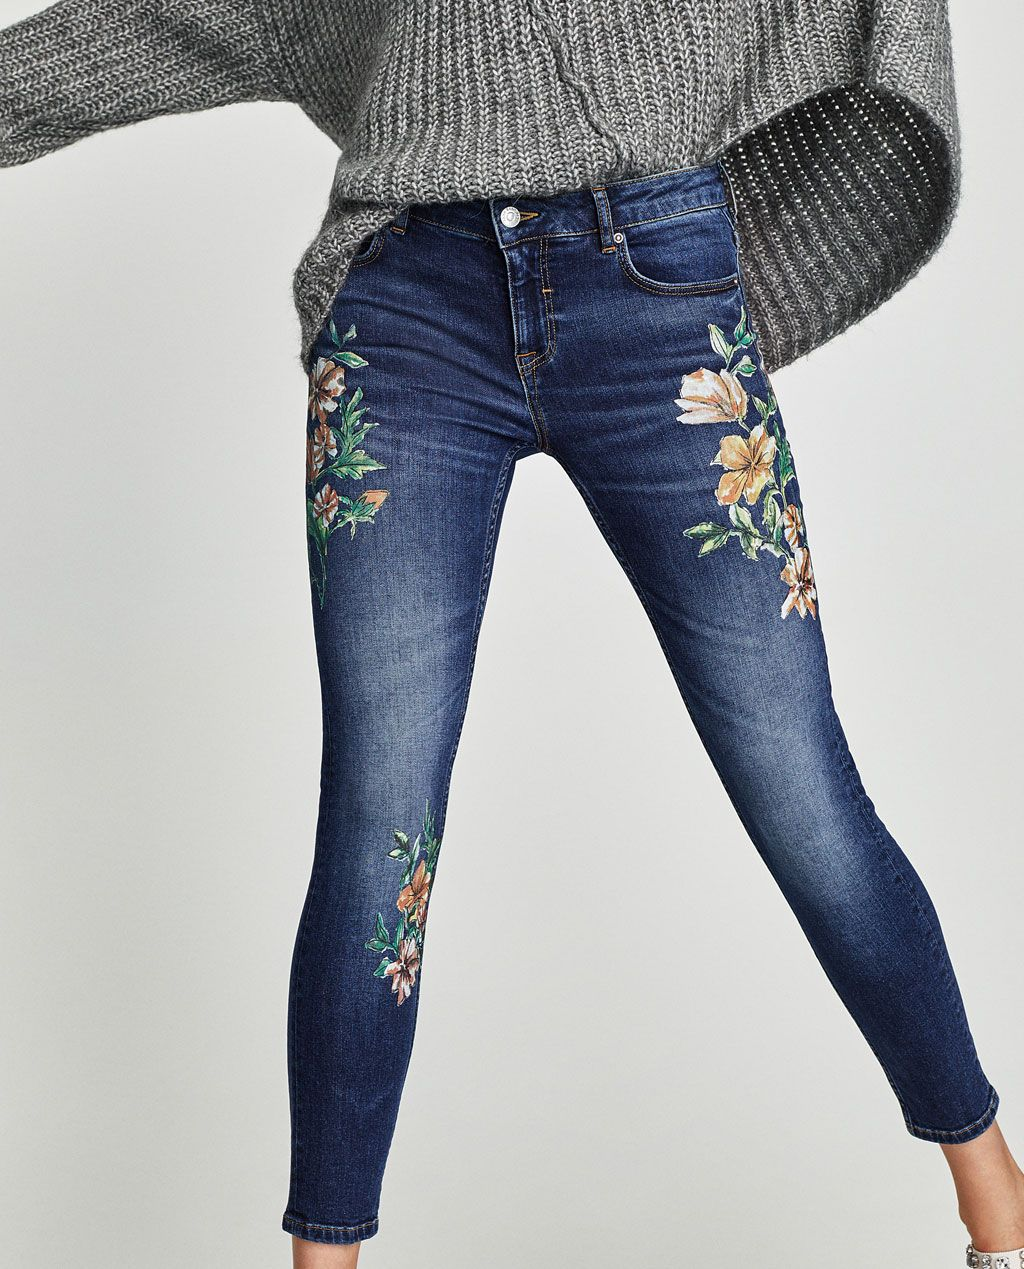 mid rise jeans with floral embroidery mid waist jeans. Black Bedroom Furniture Sets. Home Design Ideas